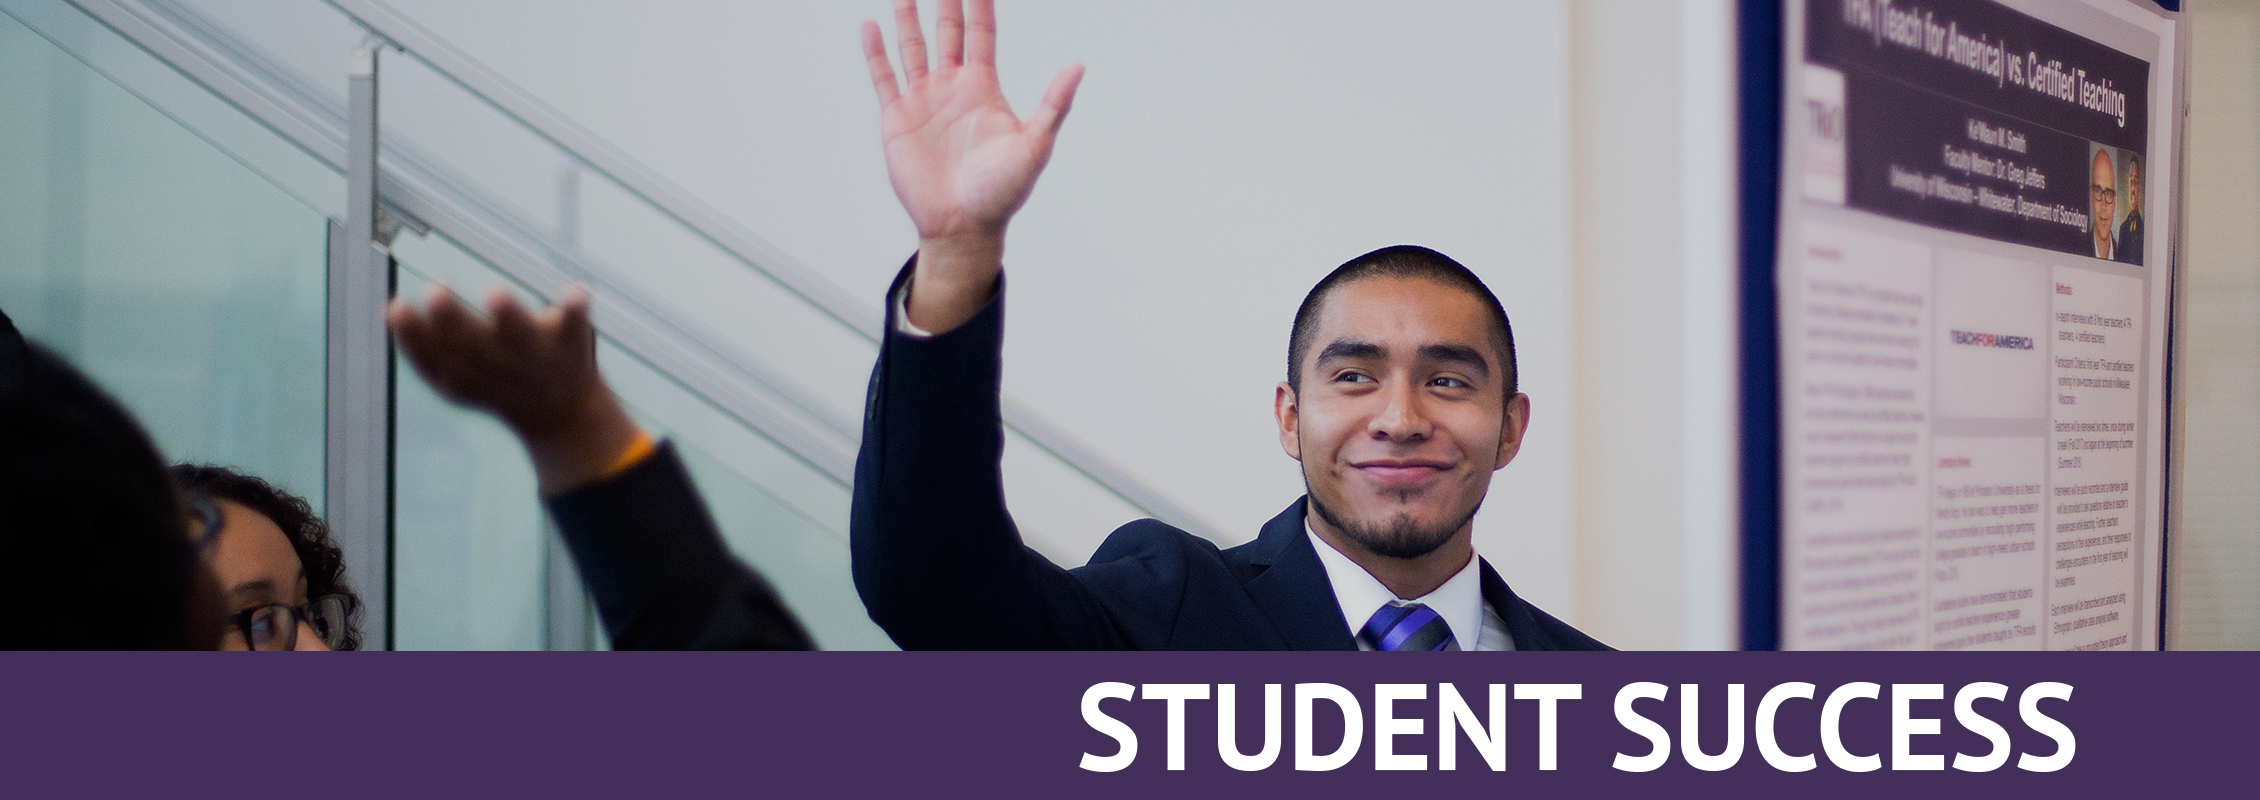 Student Success: A smiling student in a suit with his hand raised in front of his research project